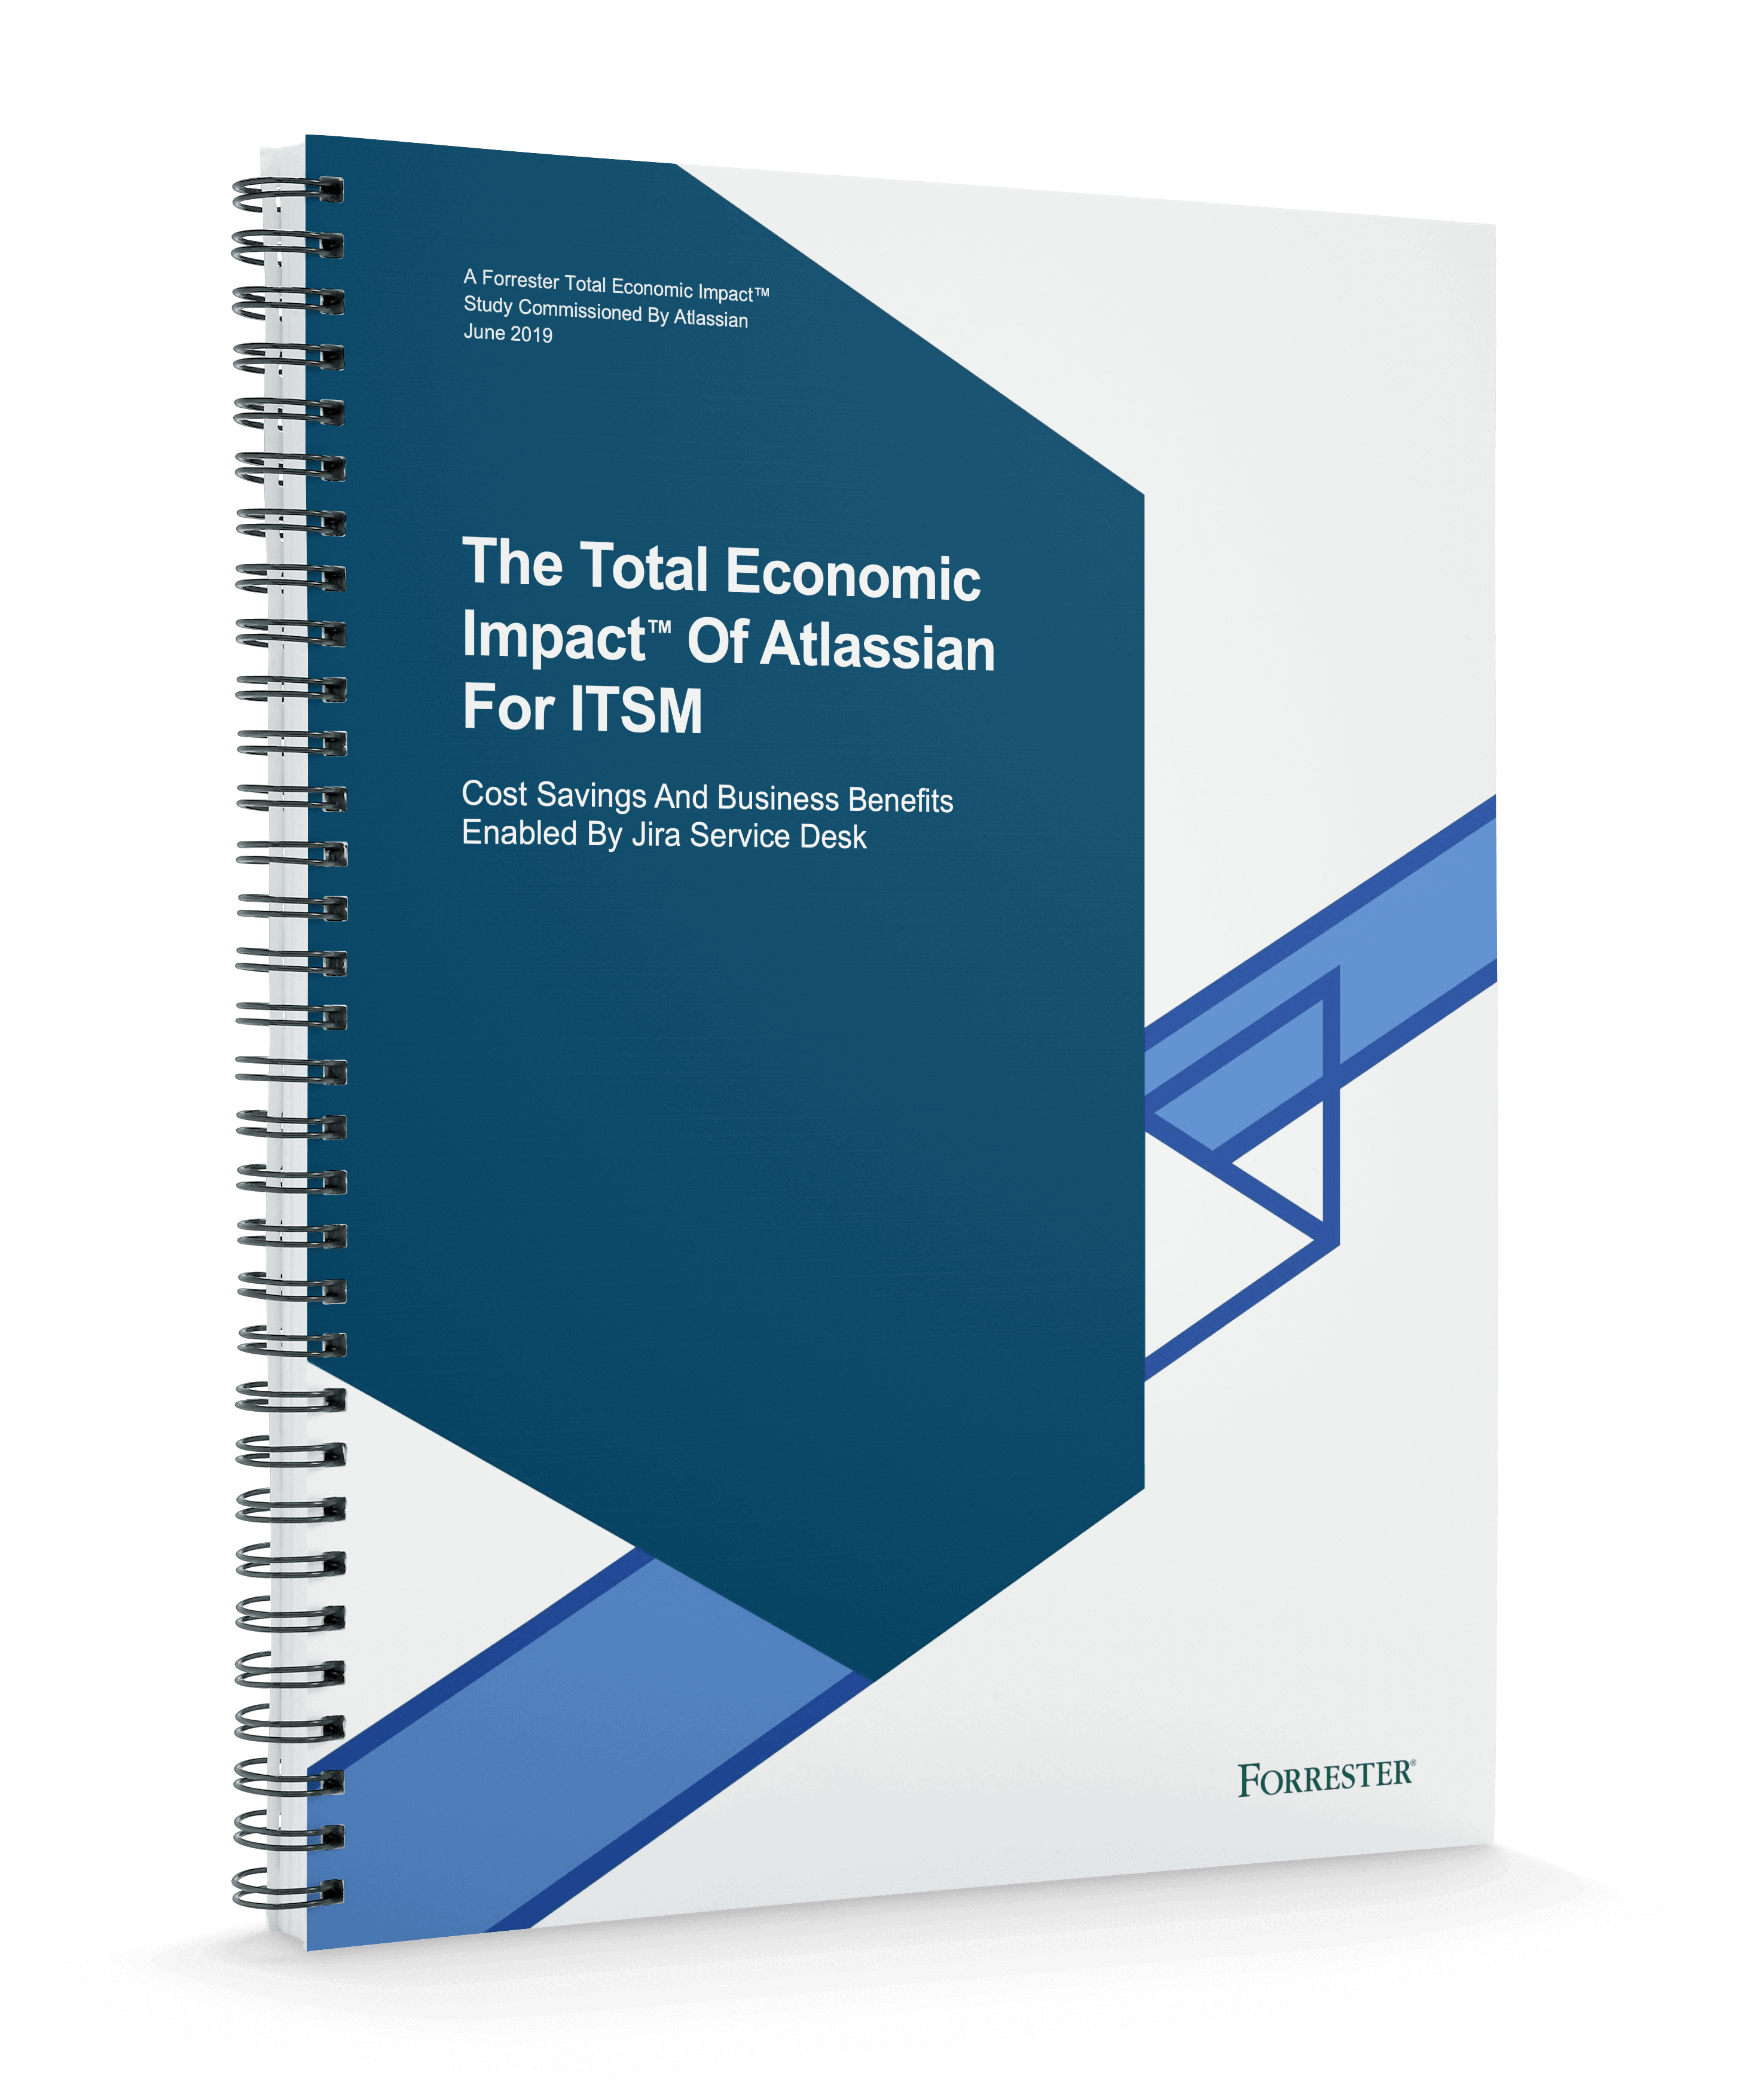 Forrester's Total Economic Impact™ Of Atlassian For ITSM